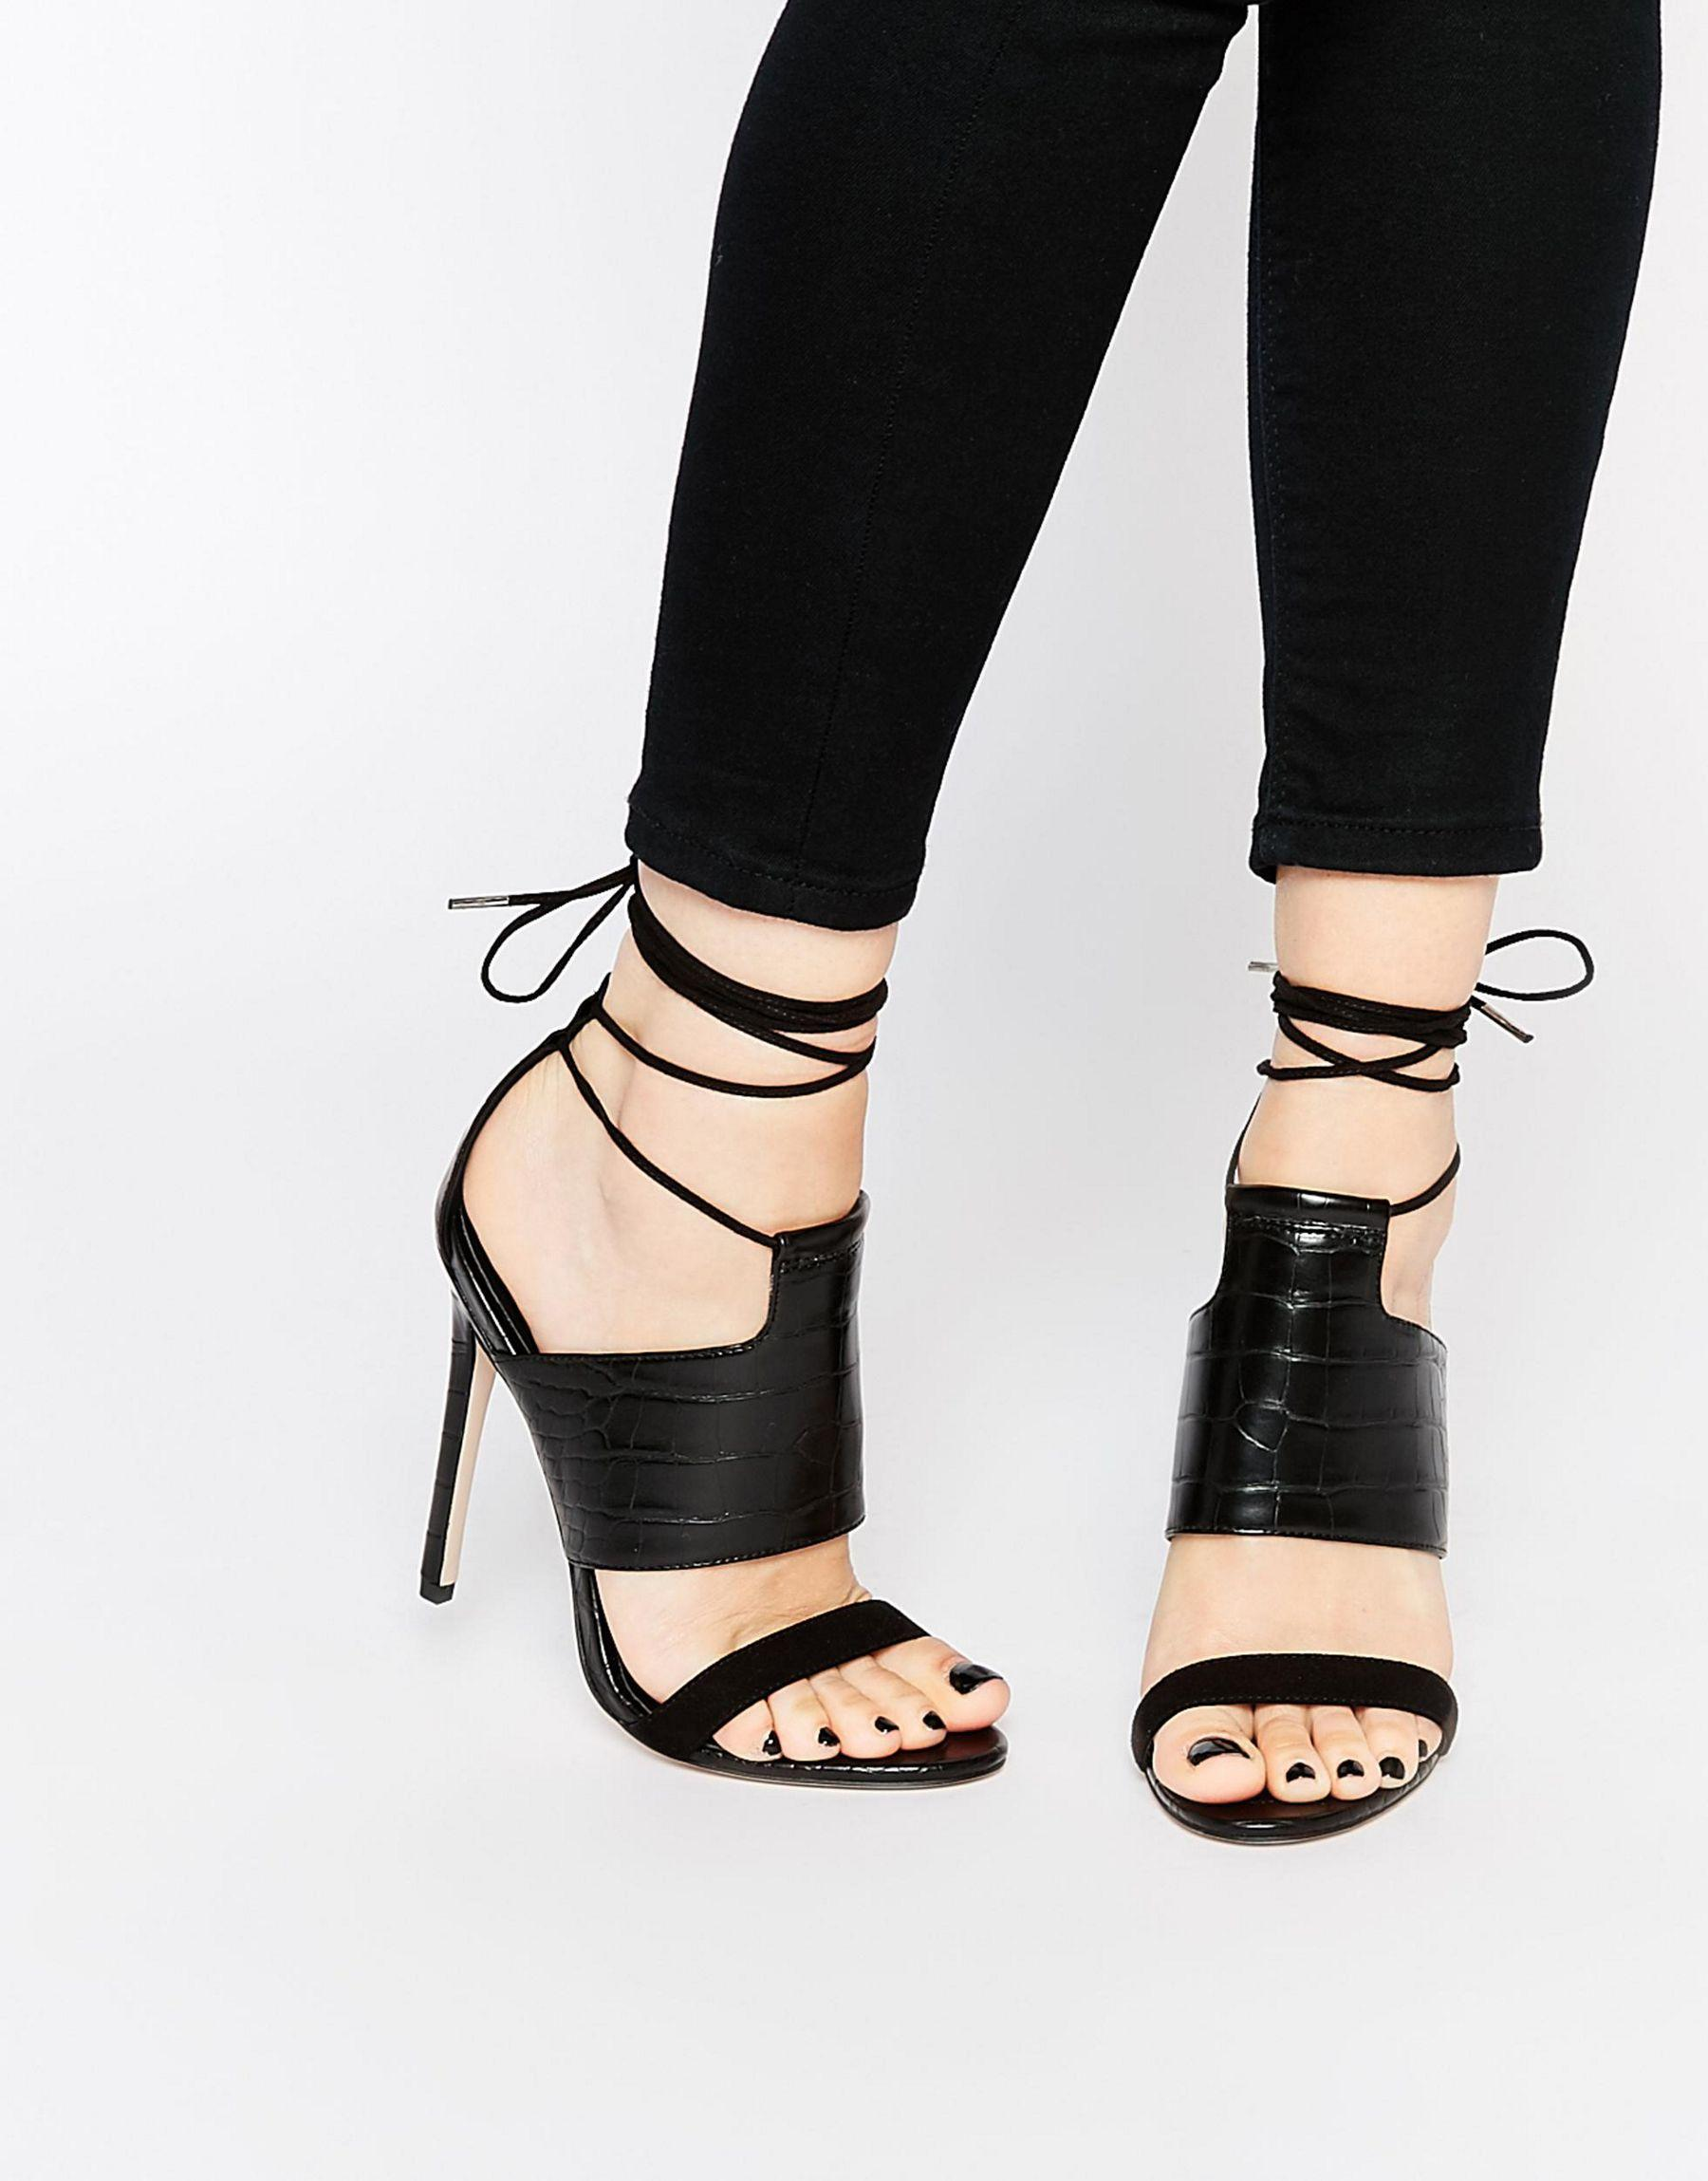 b004fdf107a Lyst - Asos Hendricks Lace Up Heeled Sandals in Black